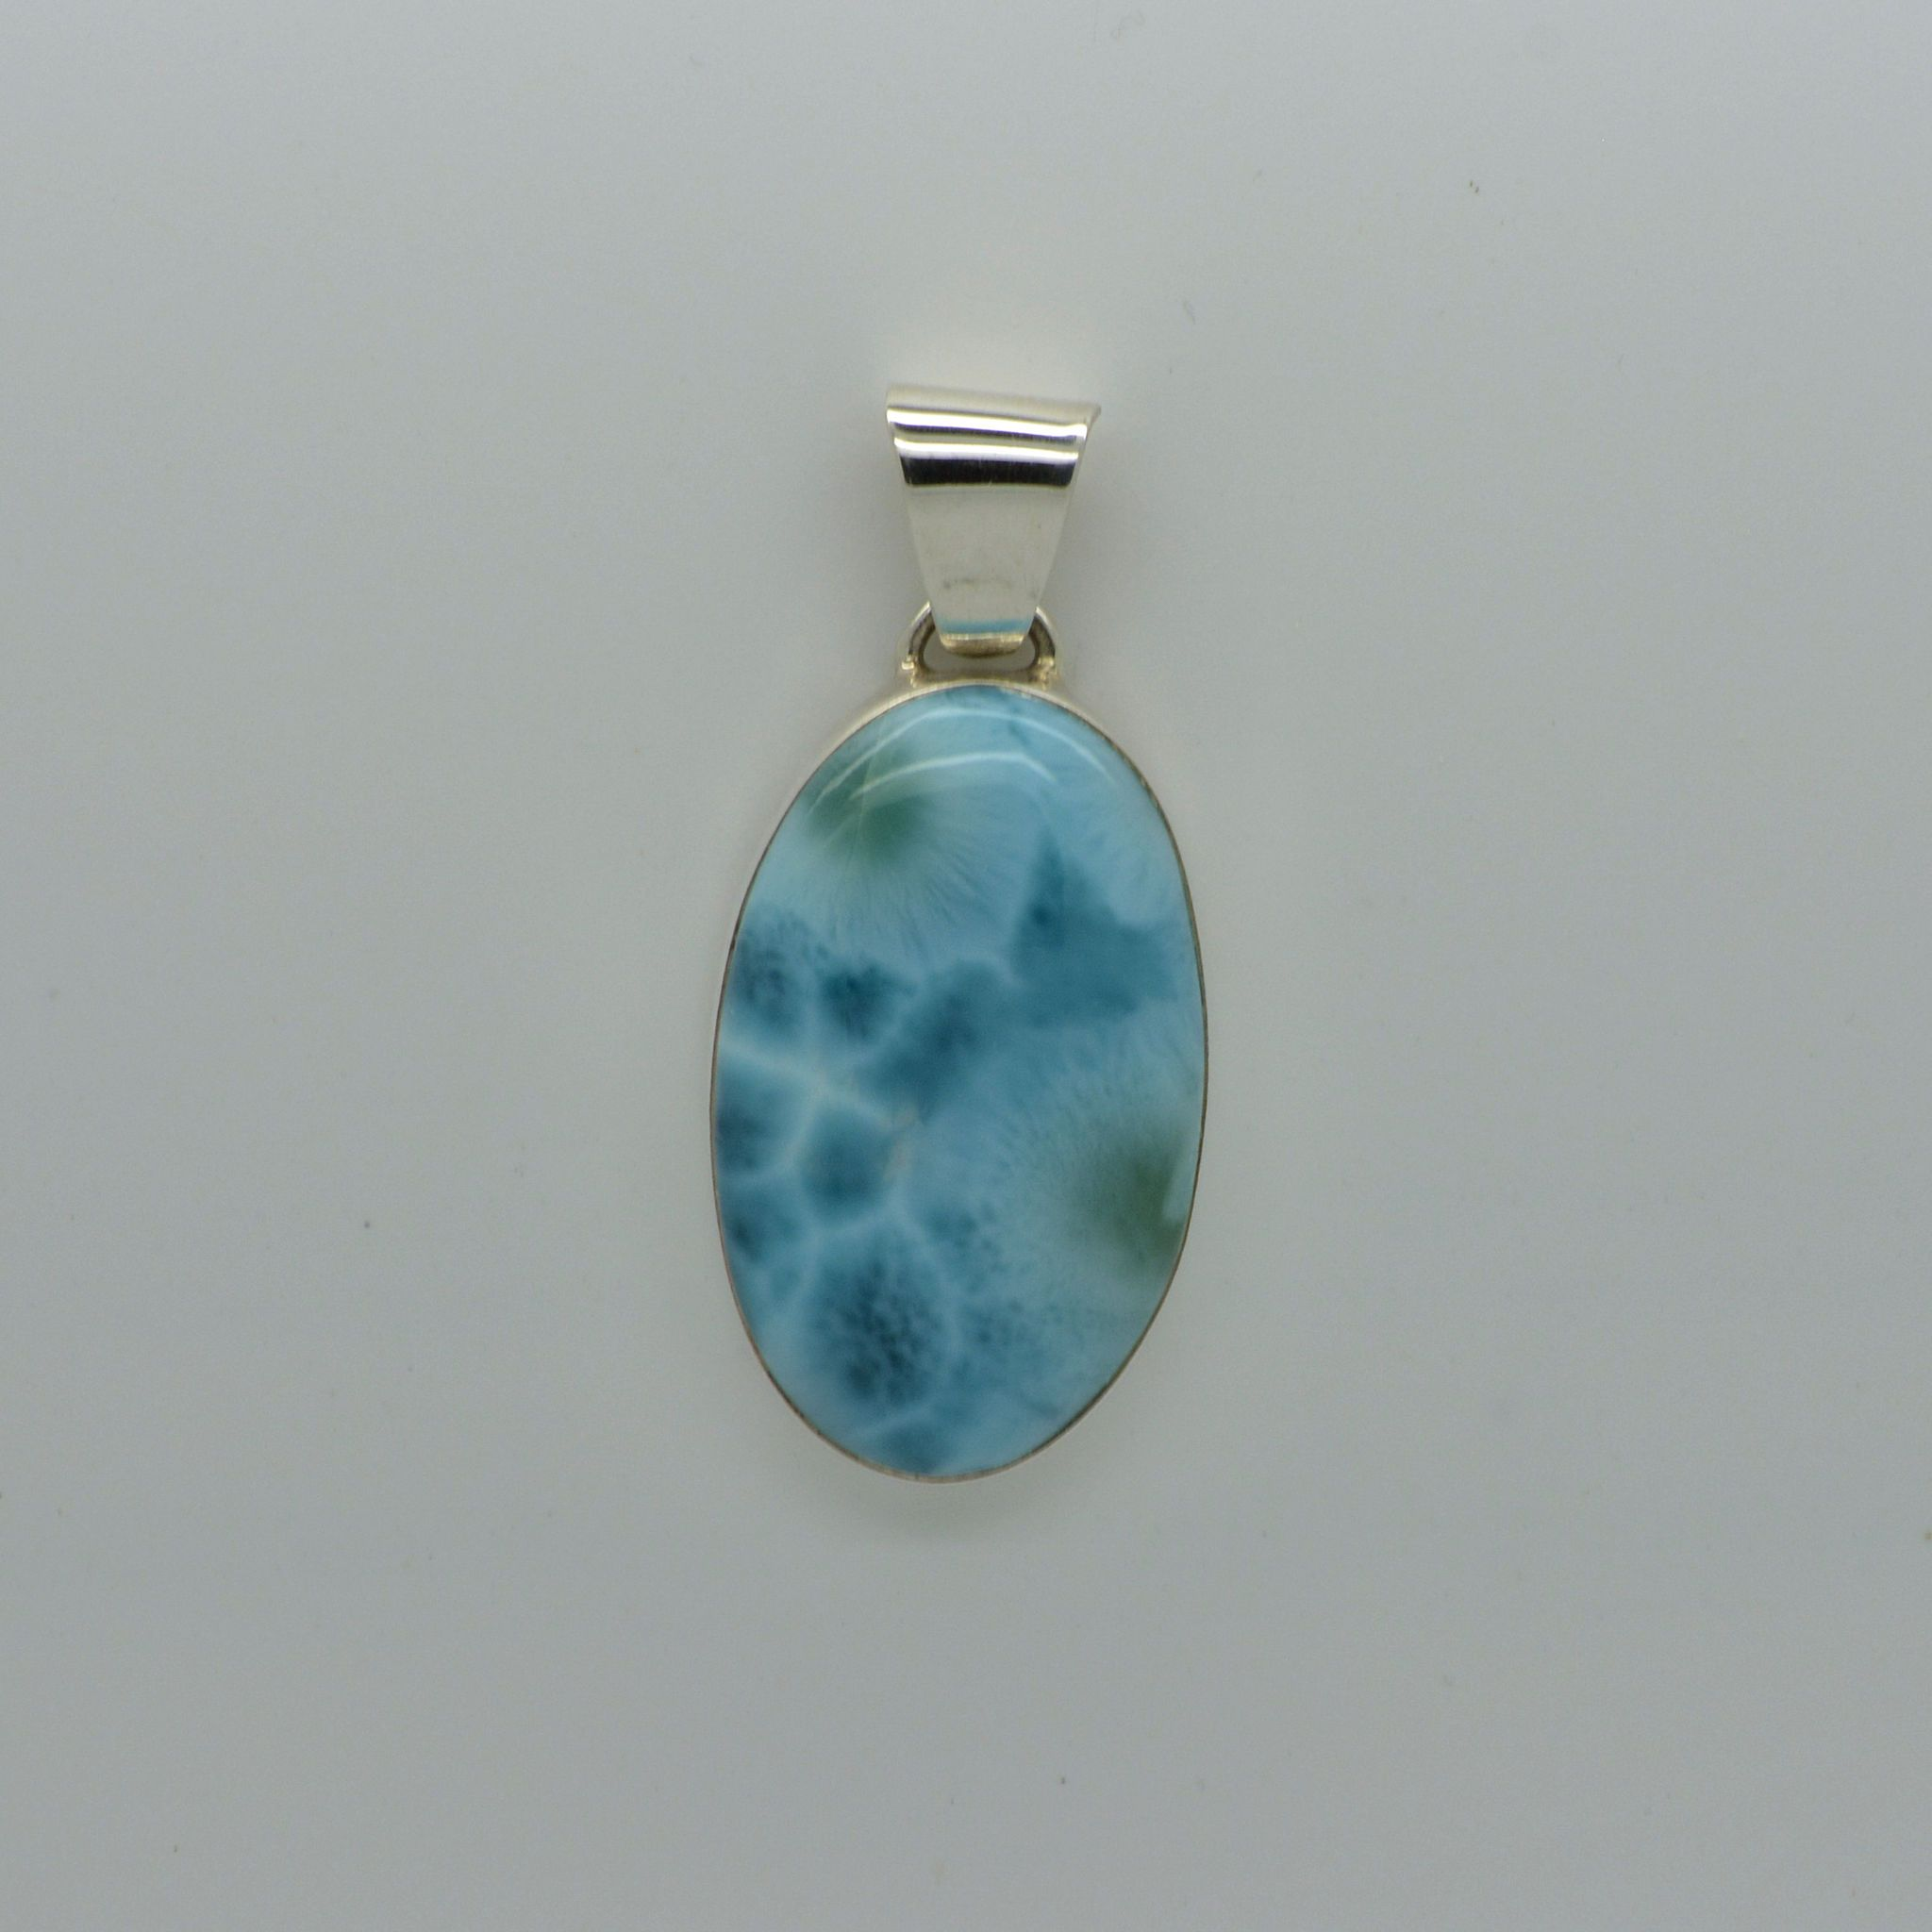 Medium Larimar Oval Pendant      14.7g